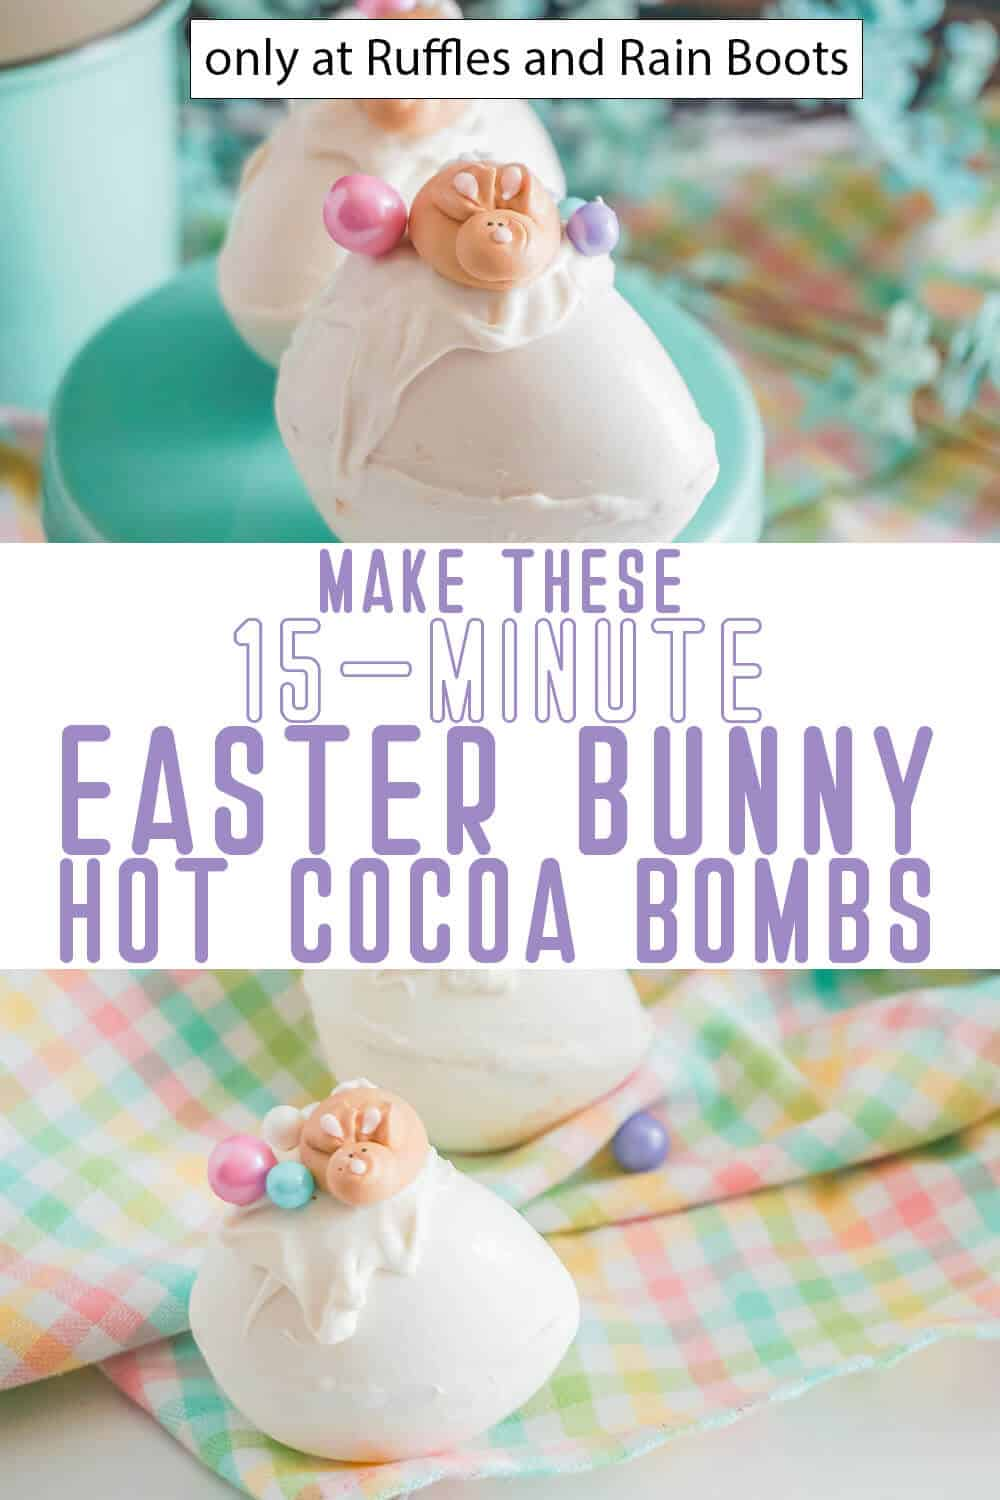 photo collage of bunny hot chocolate bombs for easter with text which reads make these 15-minute easter bunny hot cocoa bombs